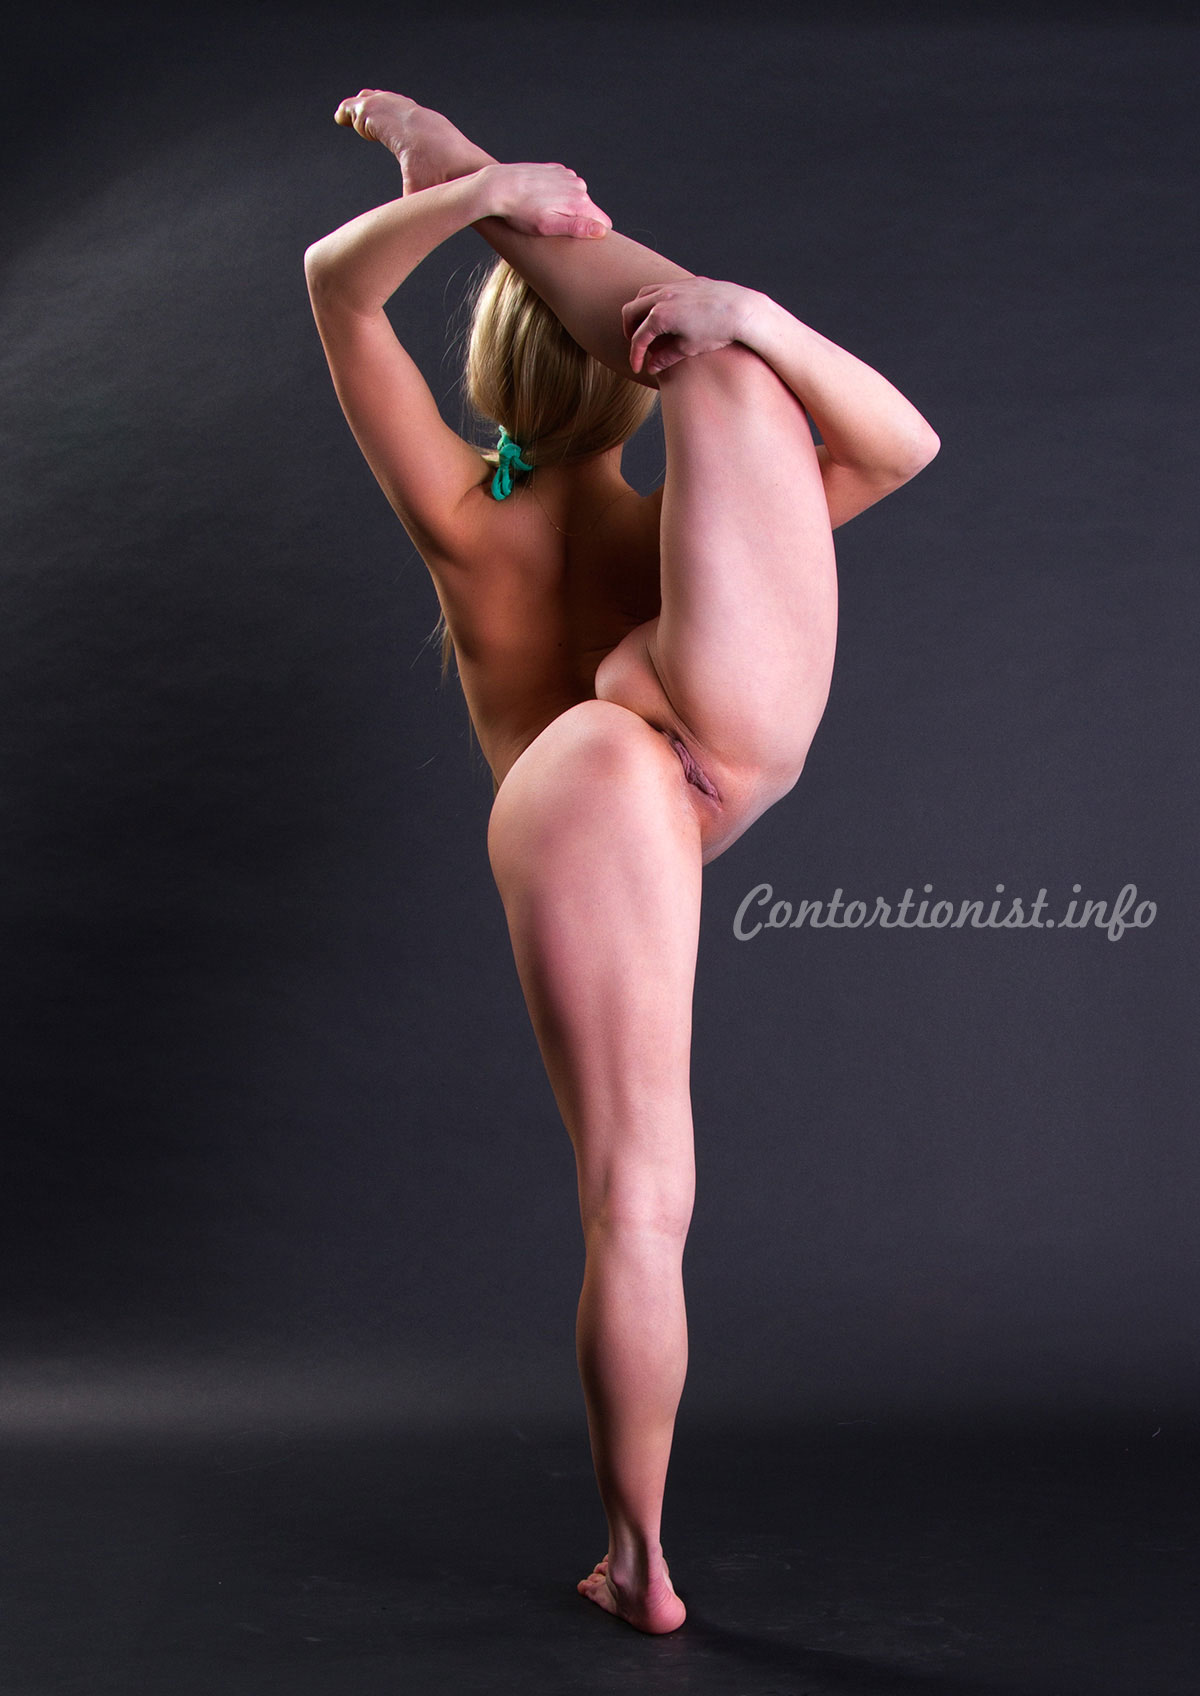 Share your nude contortionist galleries remarkable